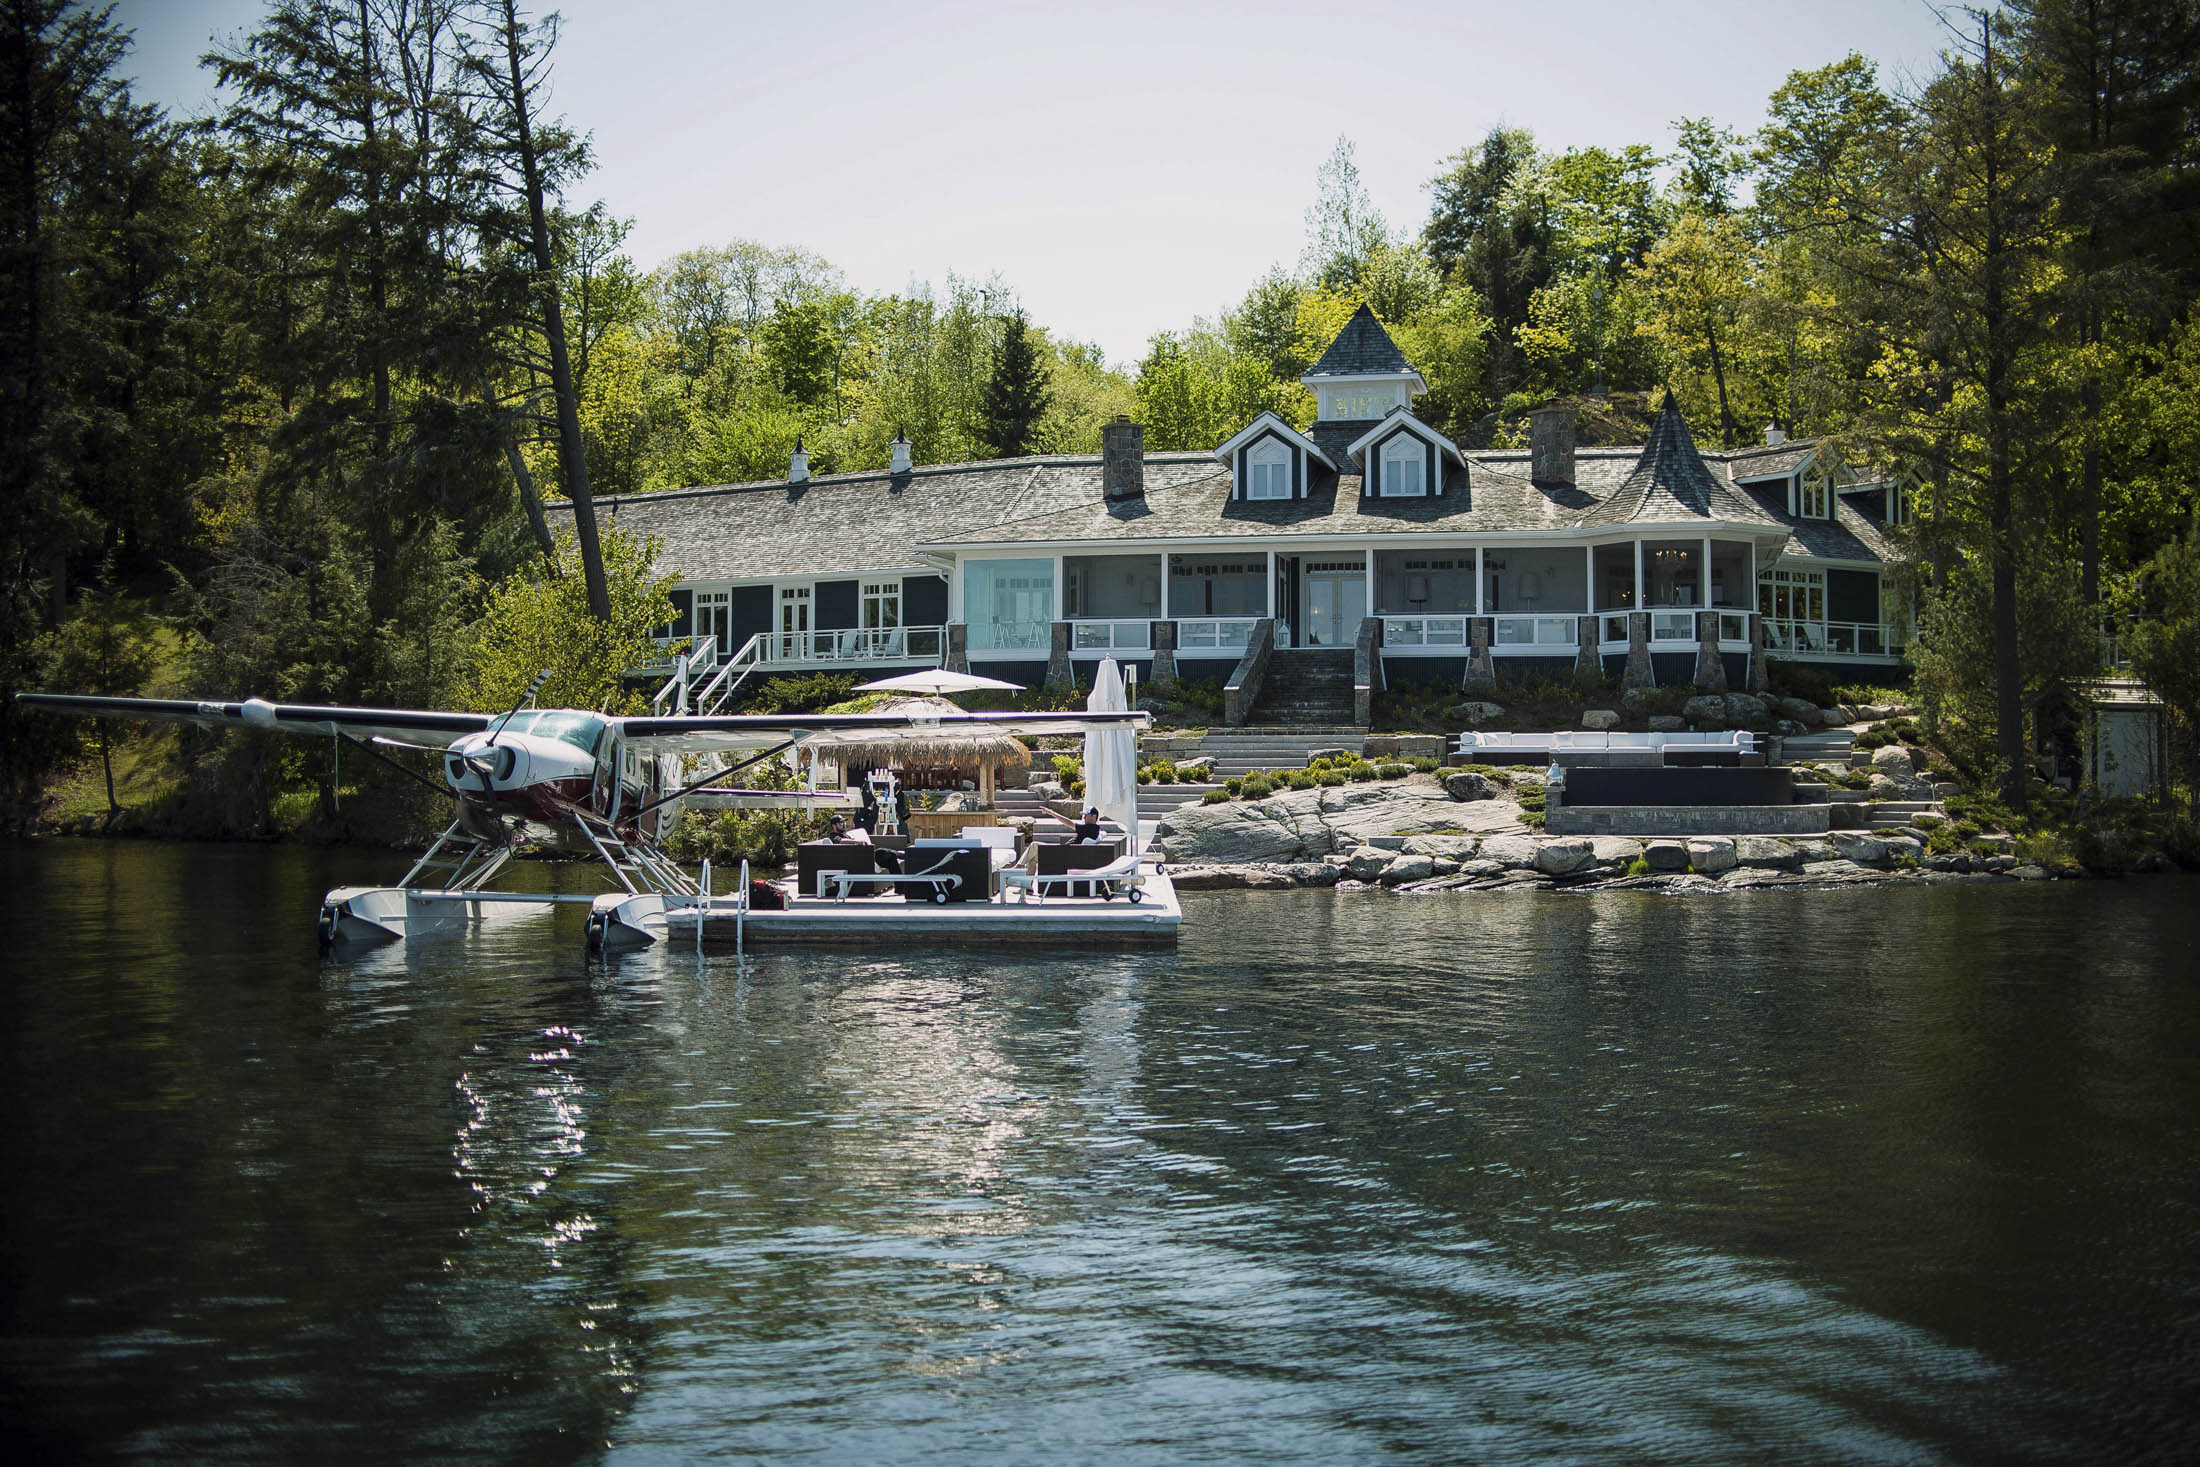 A float plane sits docked outside of a cottage on Lake Jo in Muskoka, Ontario, Canada, on Saturday, May 23, 2015. The Canadian sanctuary of Muskoka, once given away for free by the government and now a treasured spot for the titans of business, is attracting American investors who want a rustic retreat that comes with 800-thread-count sheets. Photographer: James MacDonald/Bloomberg